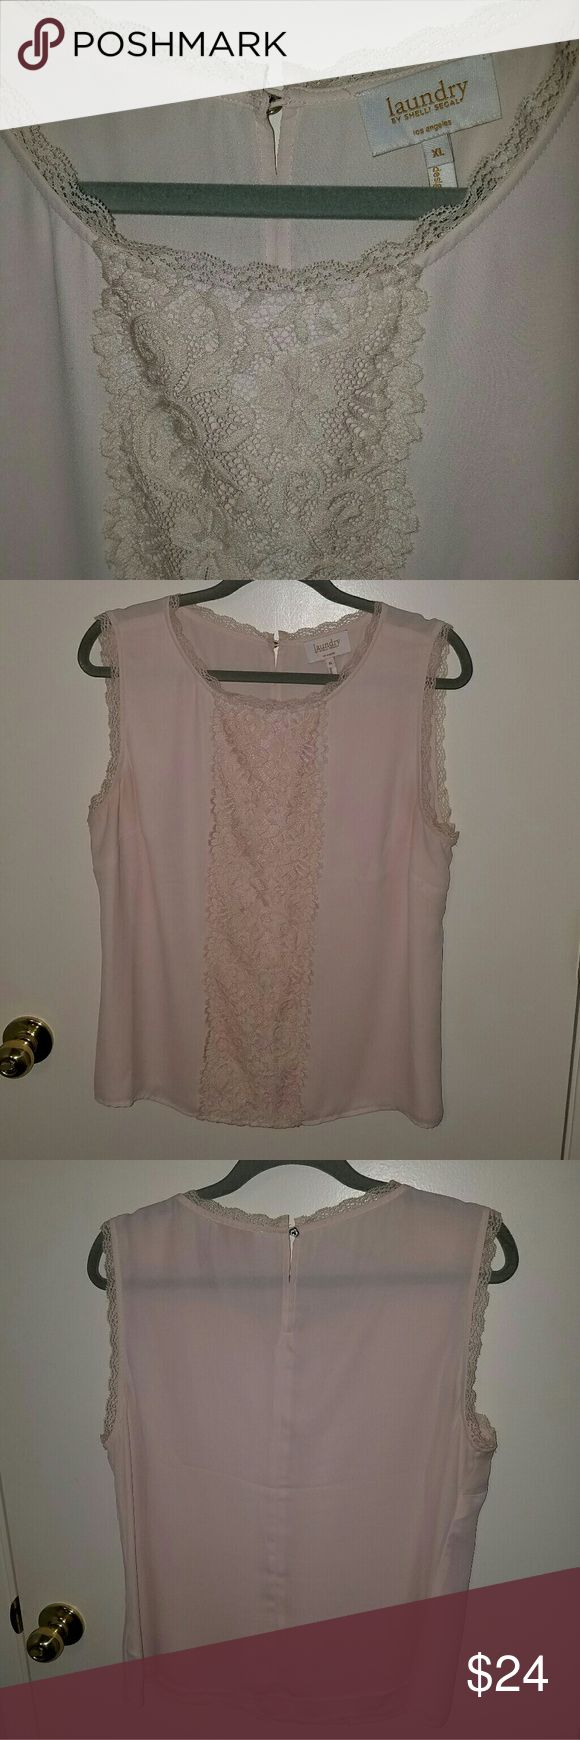 Laundry by Shelli Segal sleeveless blouse Laundry by Shelli Segal sleeveless pale pink blouse. Excellent condition. Only worn once or twice. Looks new. Laundry by Shelli Segal Tops Blouses